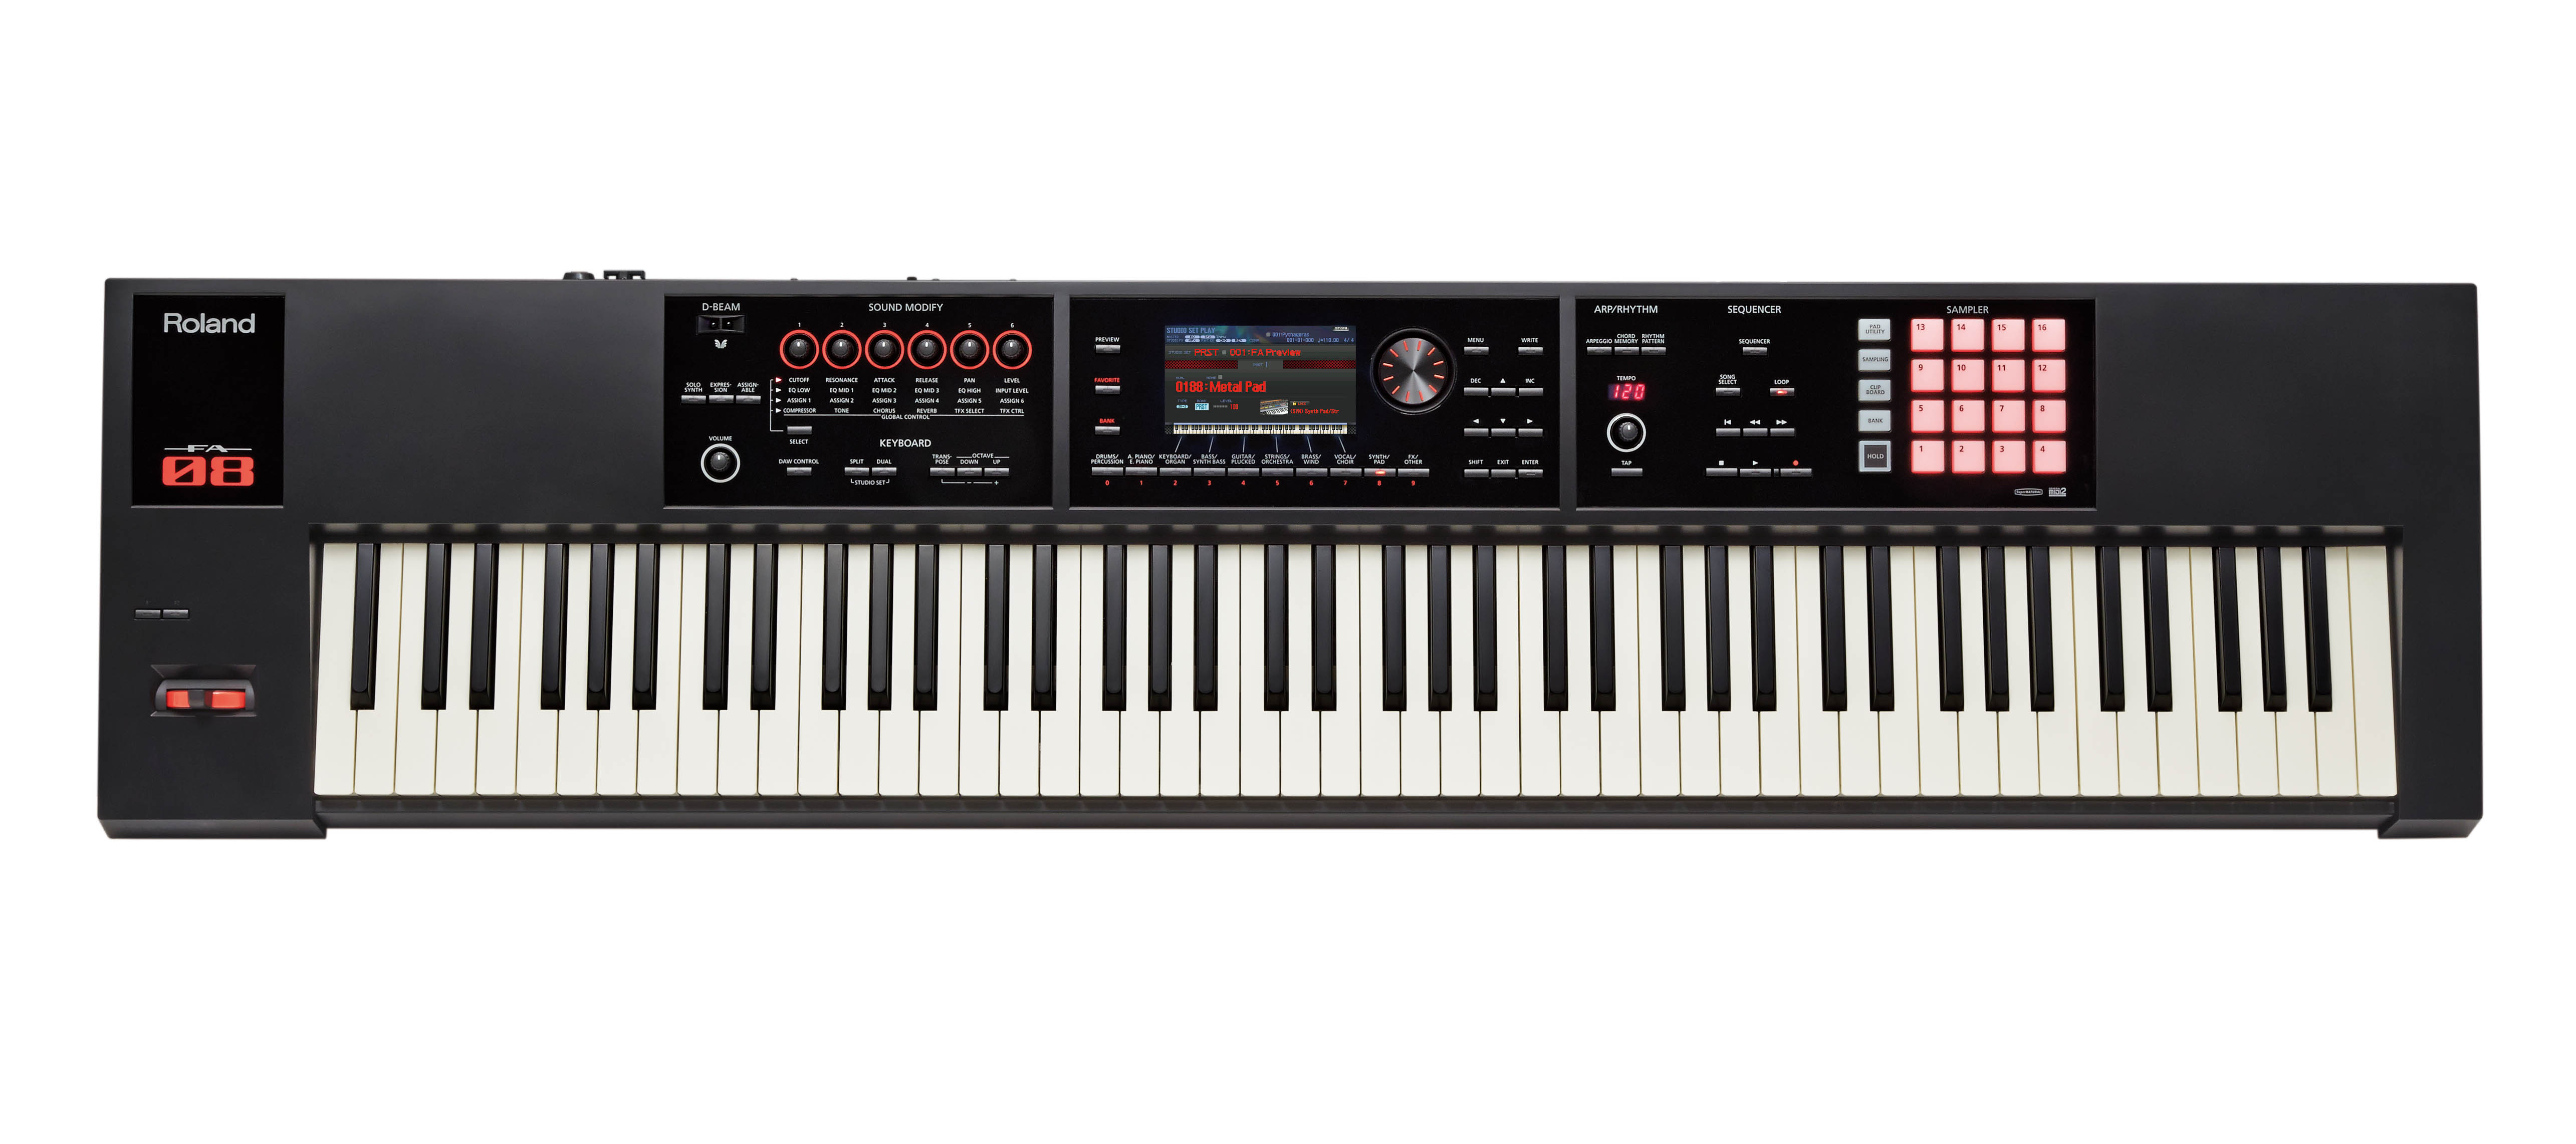 roland fa 08 88 key synthesizer workstation with weighted keys 761294504345 ebay. Black Bedroom Furniture Sets. Home Design Ideas